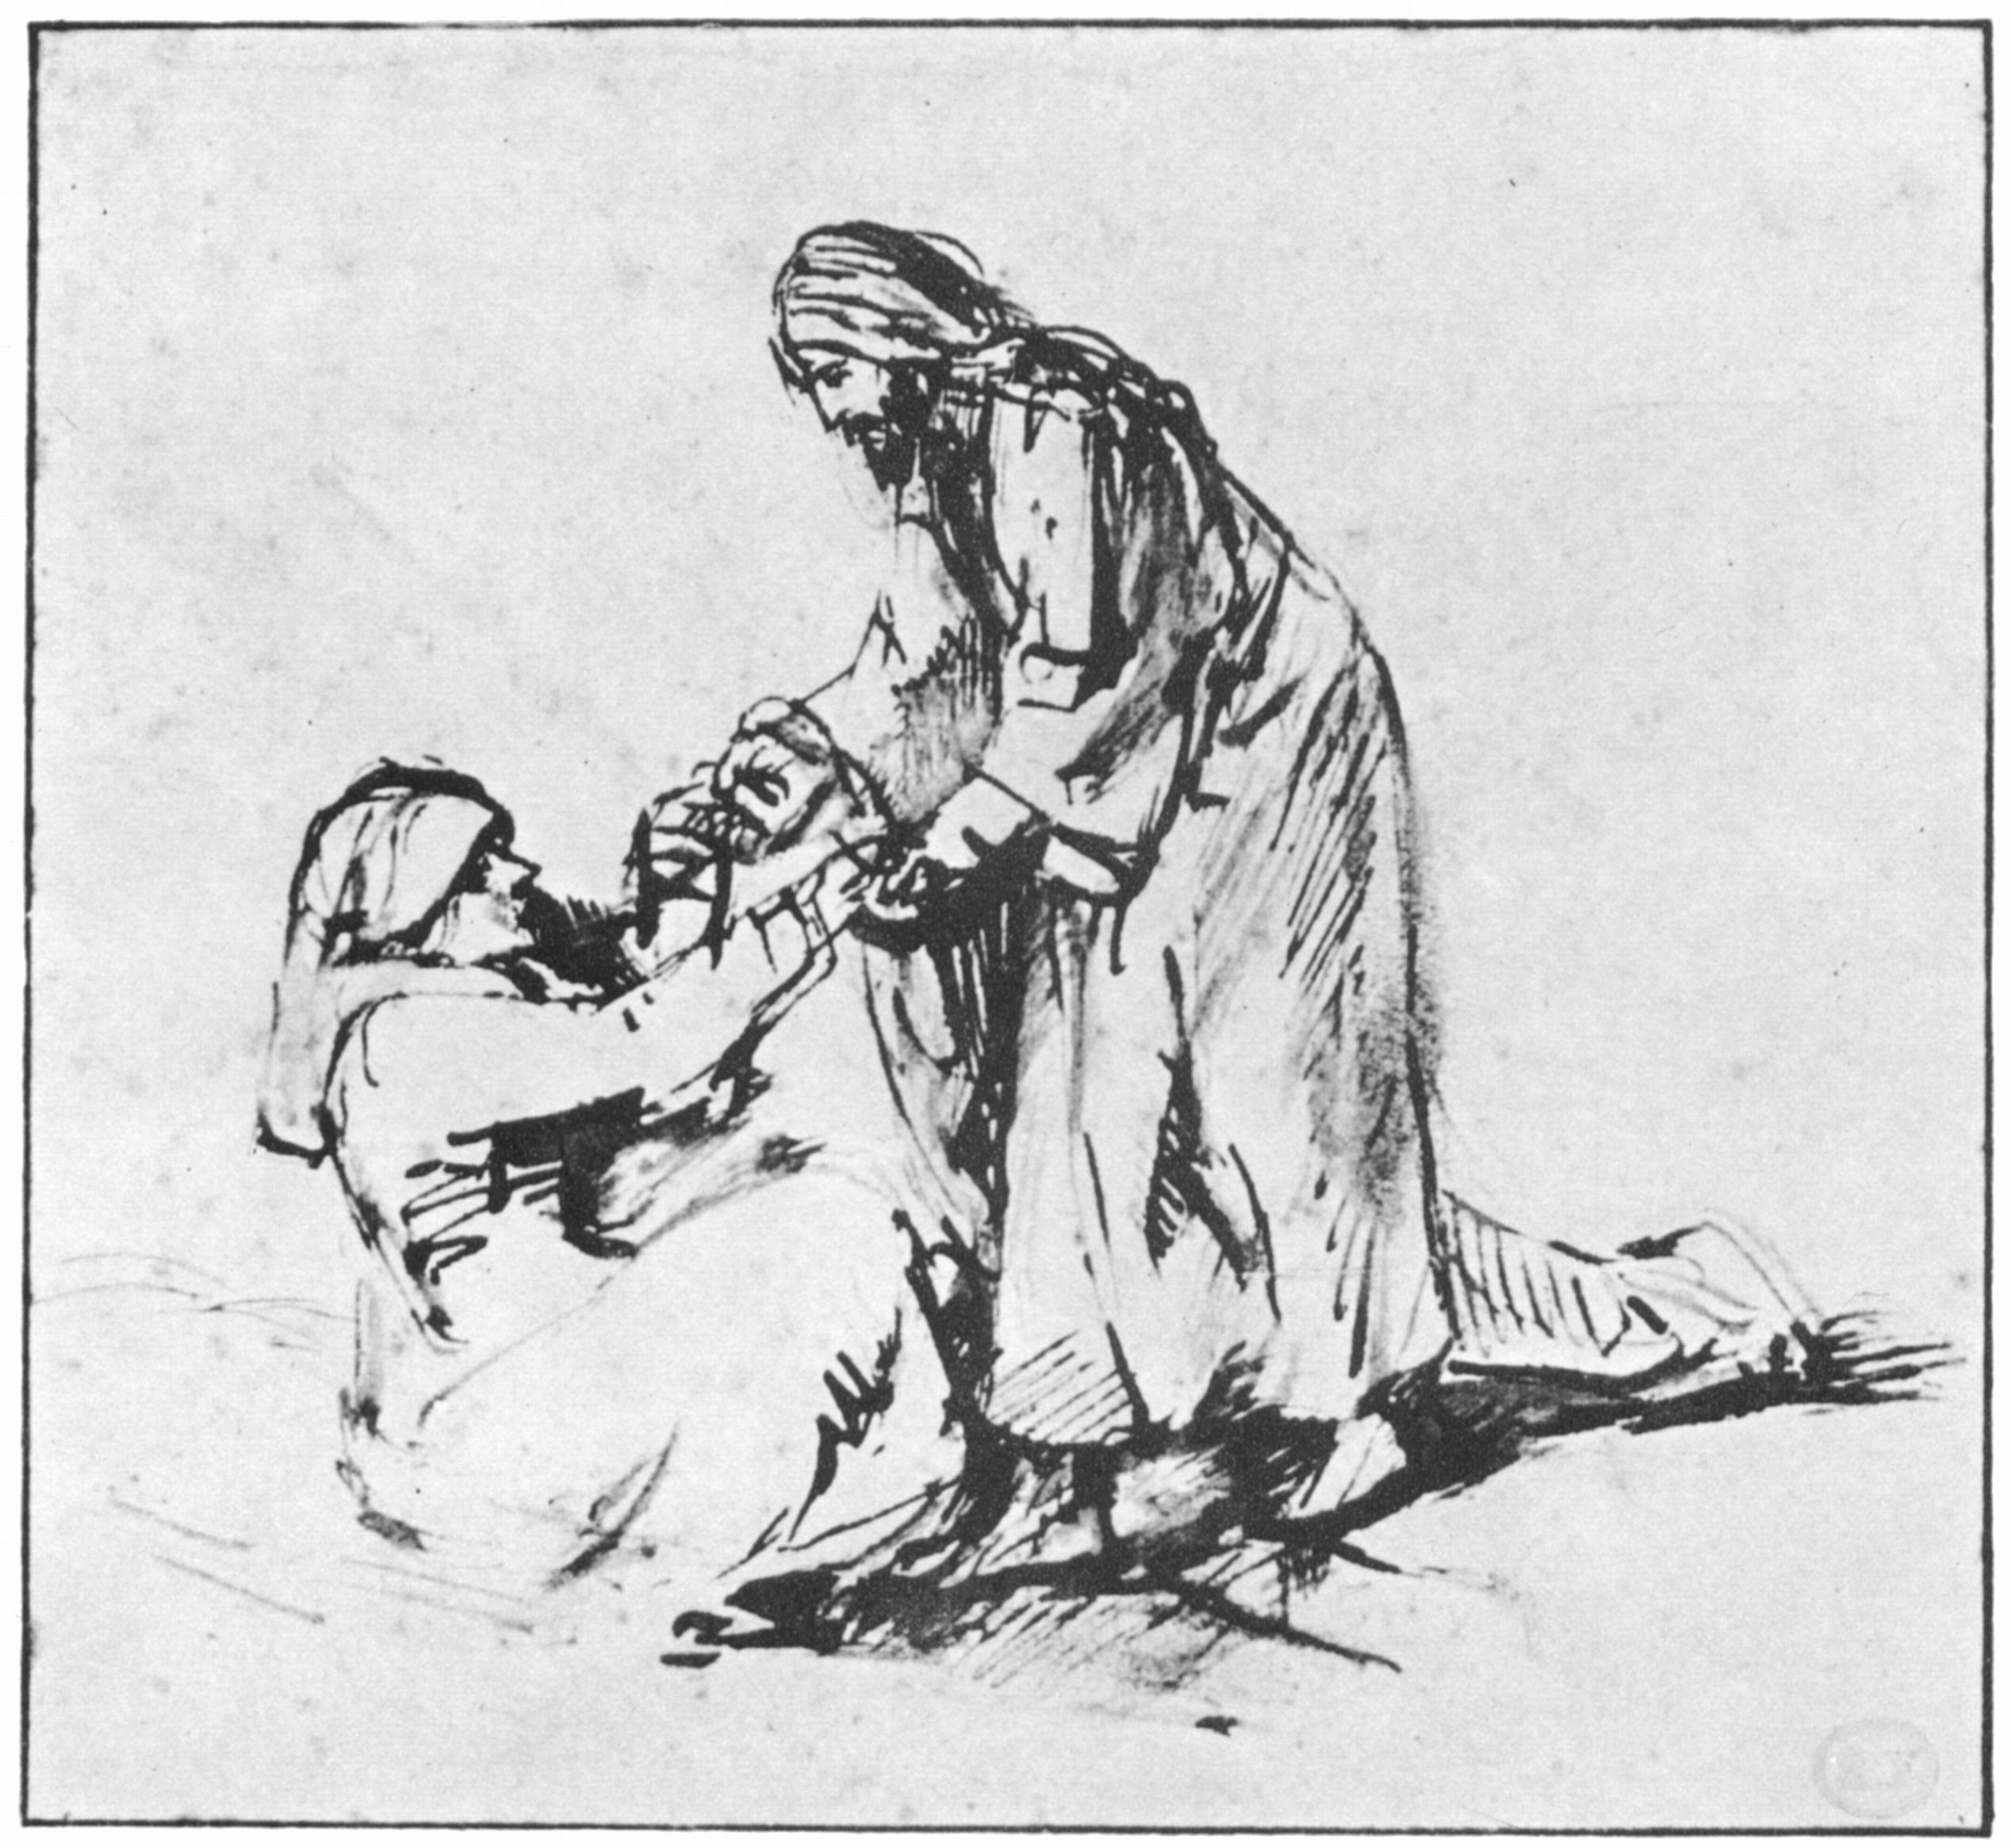 rembrandt-1660-healing-of-mother-in-law